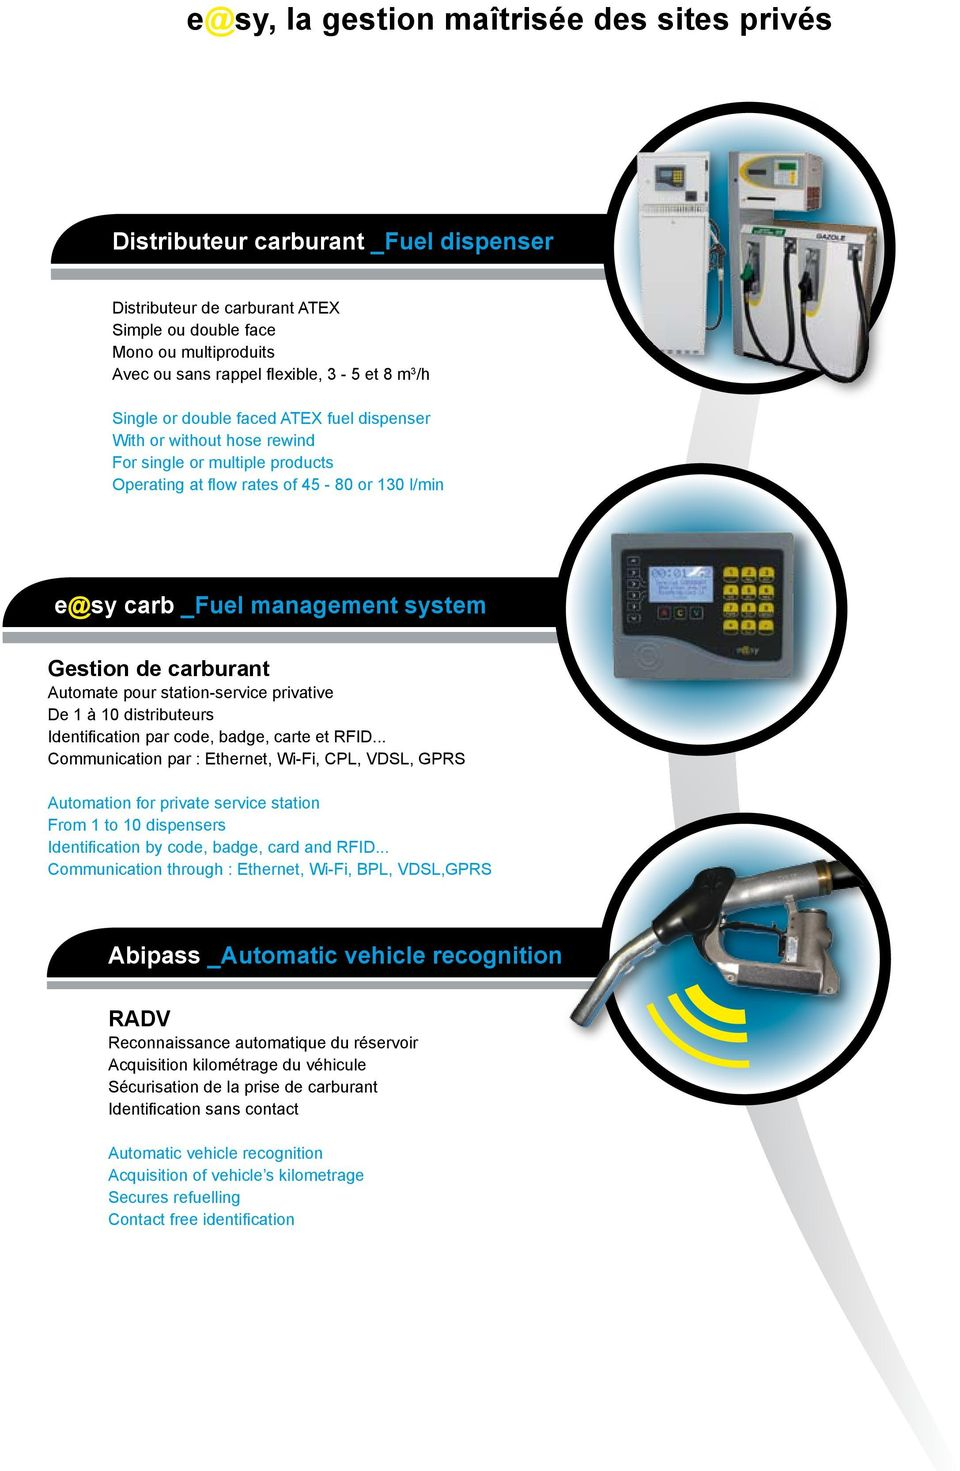 carburant Automate pour station-service privative De 1 à 10 distributeurs Identification par code, badge, carte et RFID.